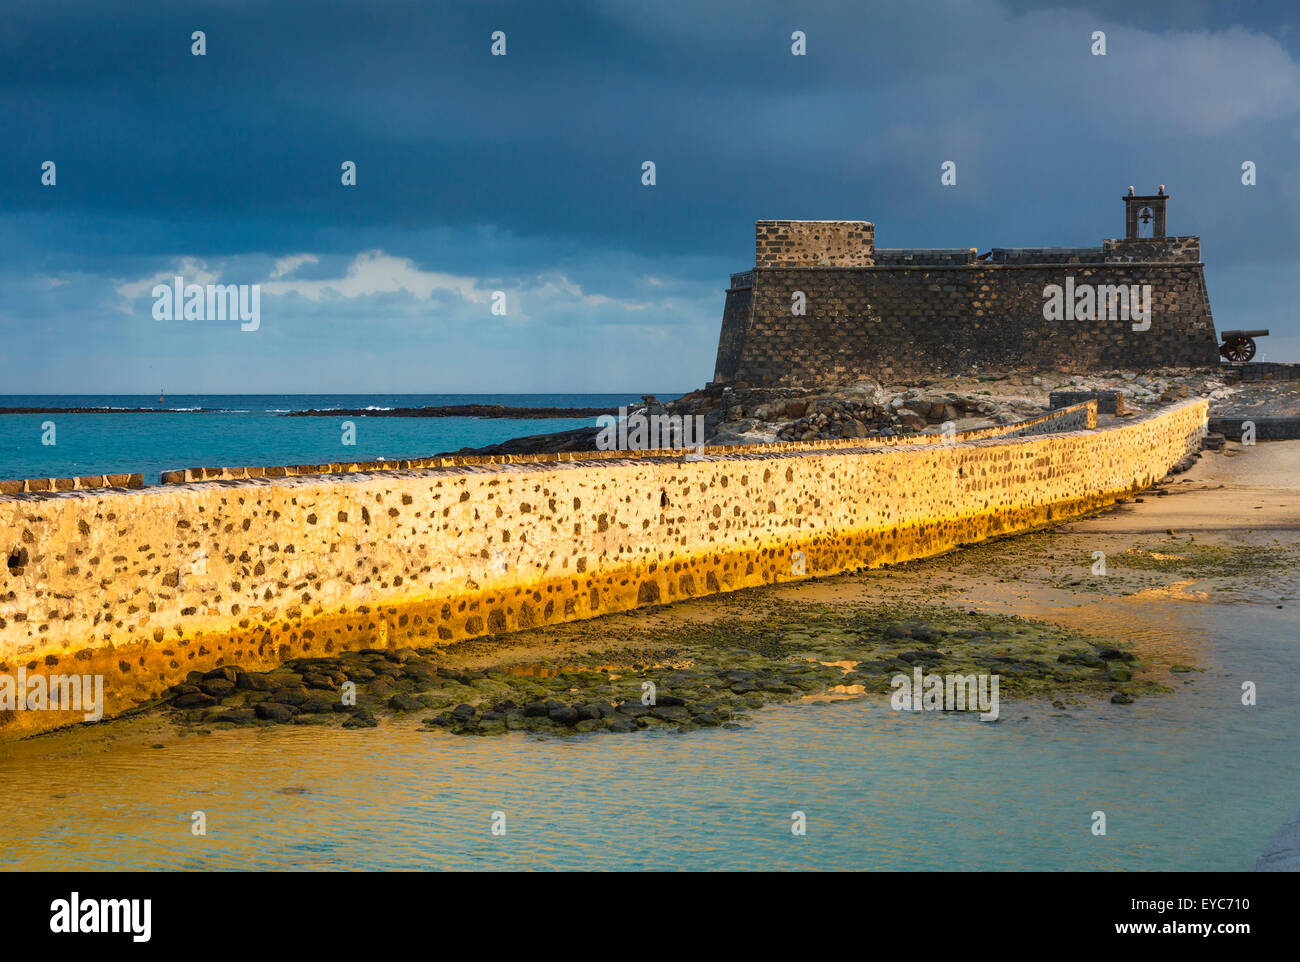 Fortress. Castle of San Gabriel. Arrecife. Lanzarote, Canary Islands, Spain, Europe. - Stock Image